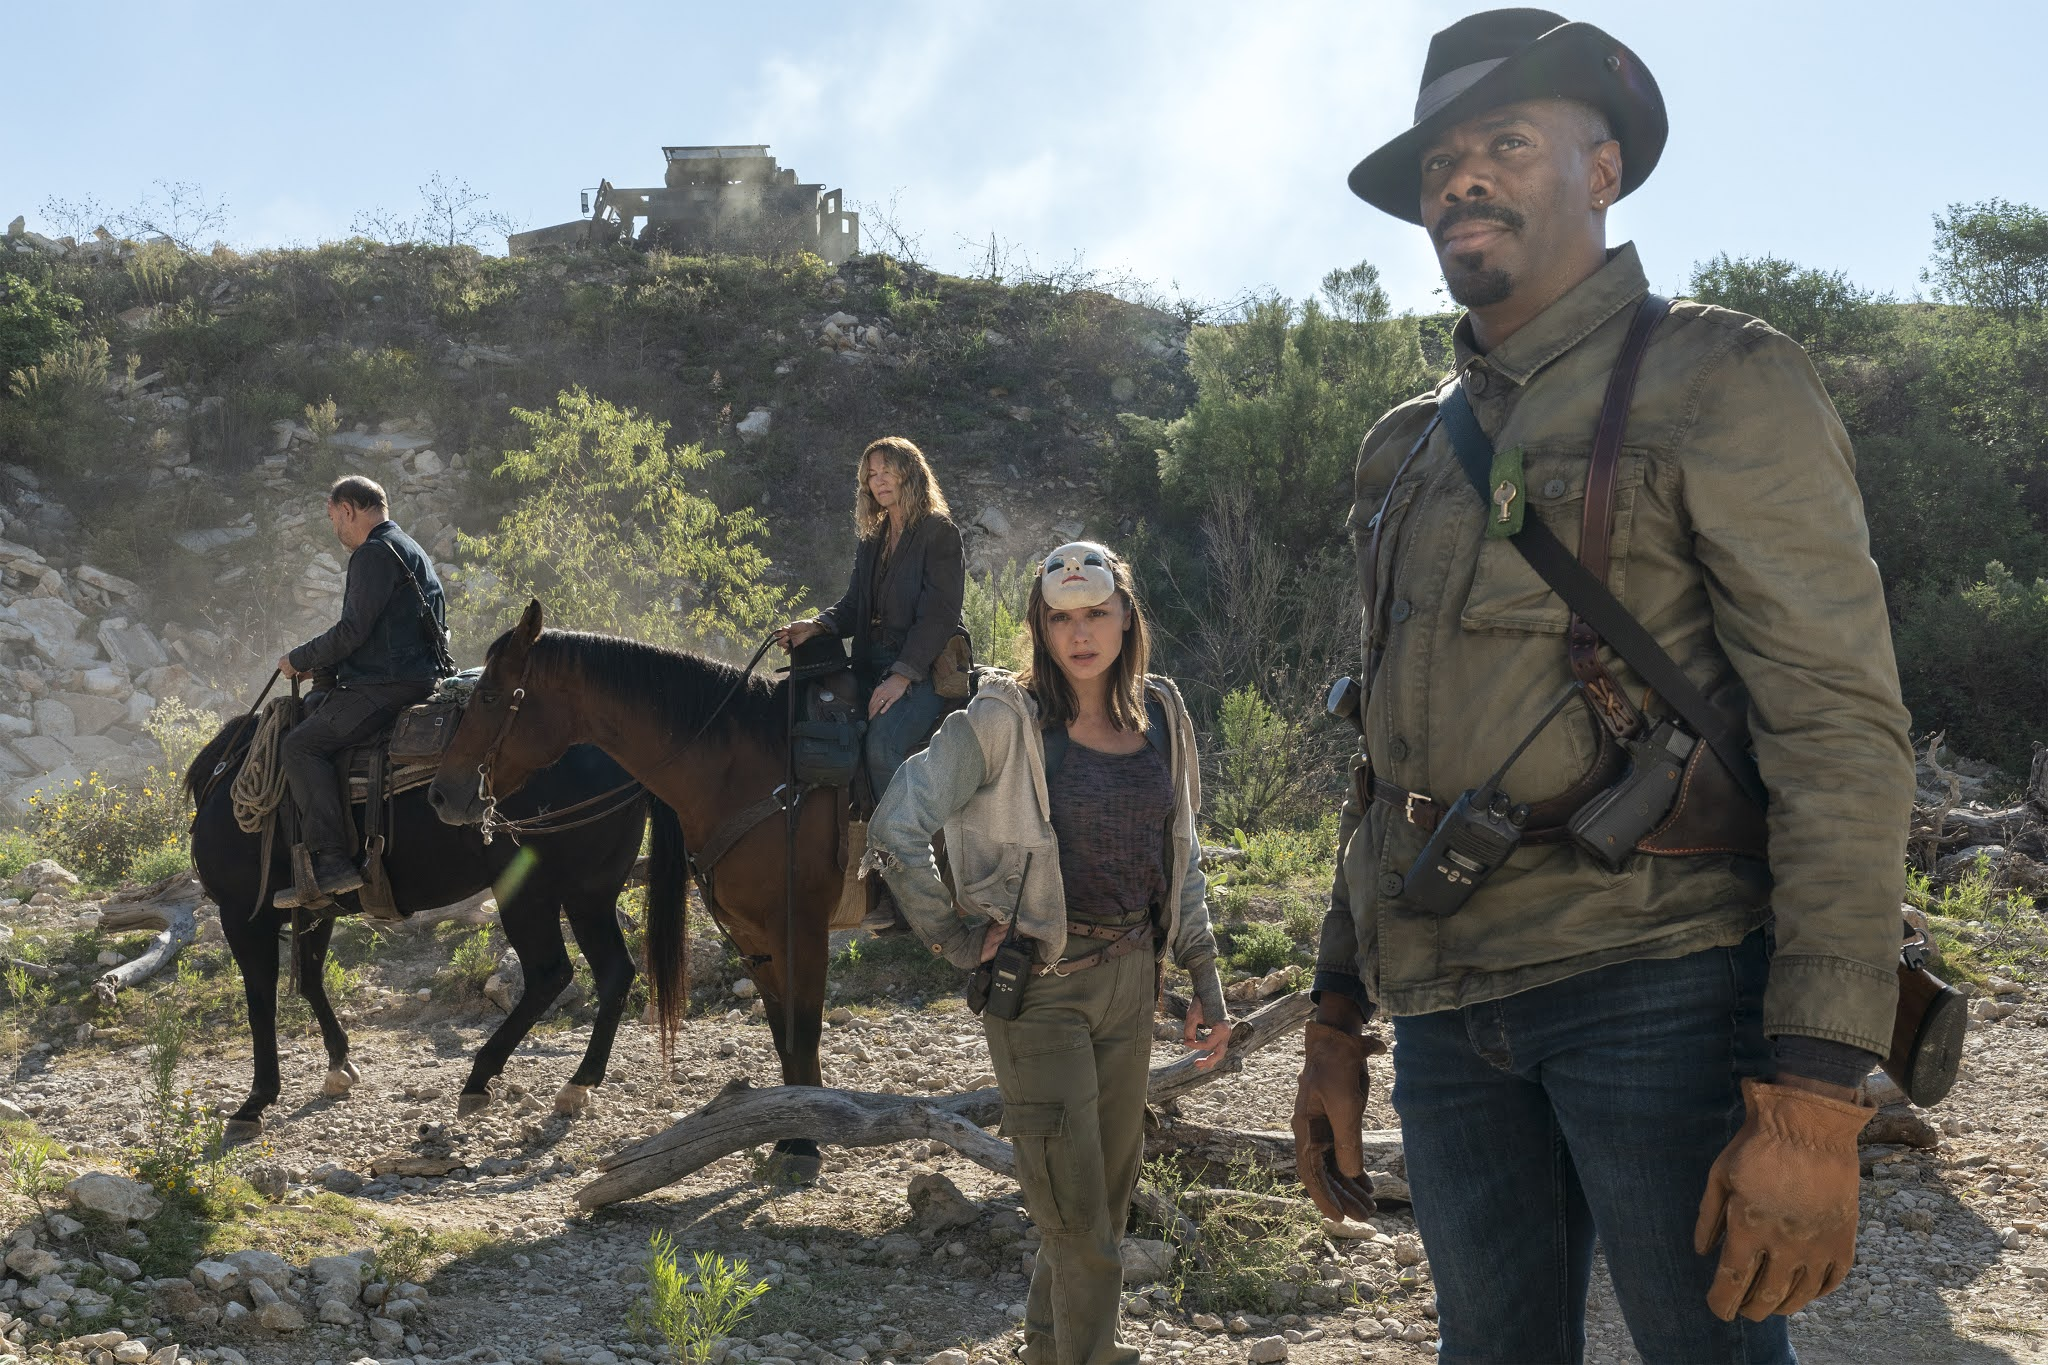 Victor, Sherry, June y Daniel esperana a la puerta de la presa en Fear The Walking Dead